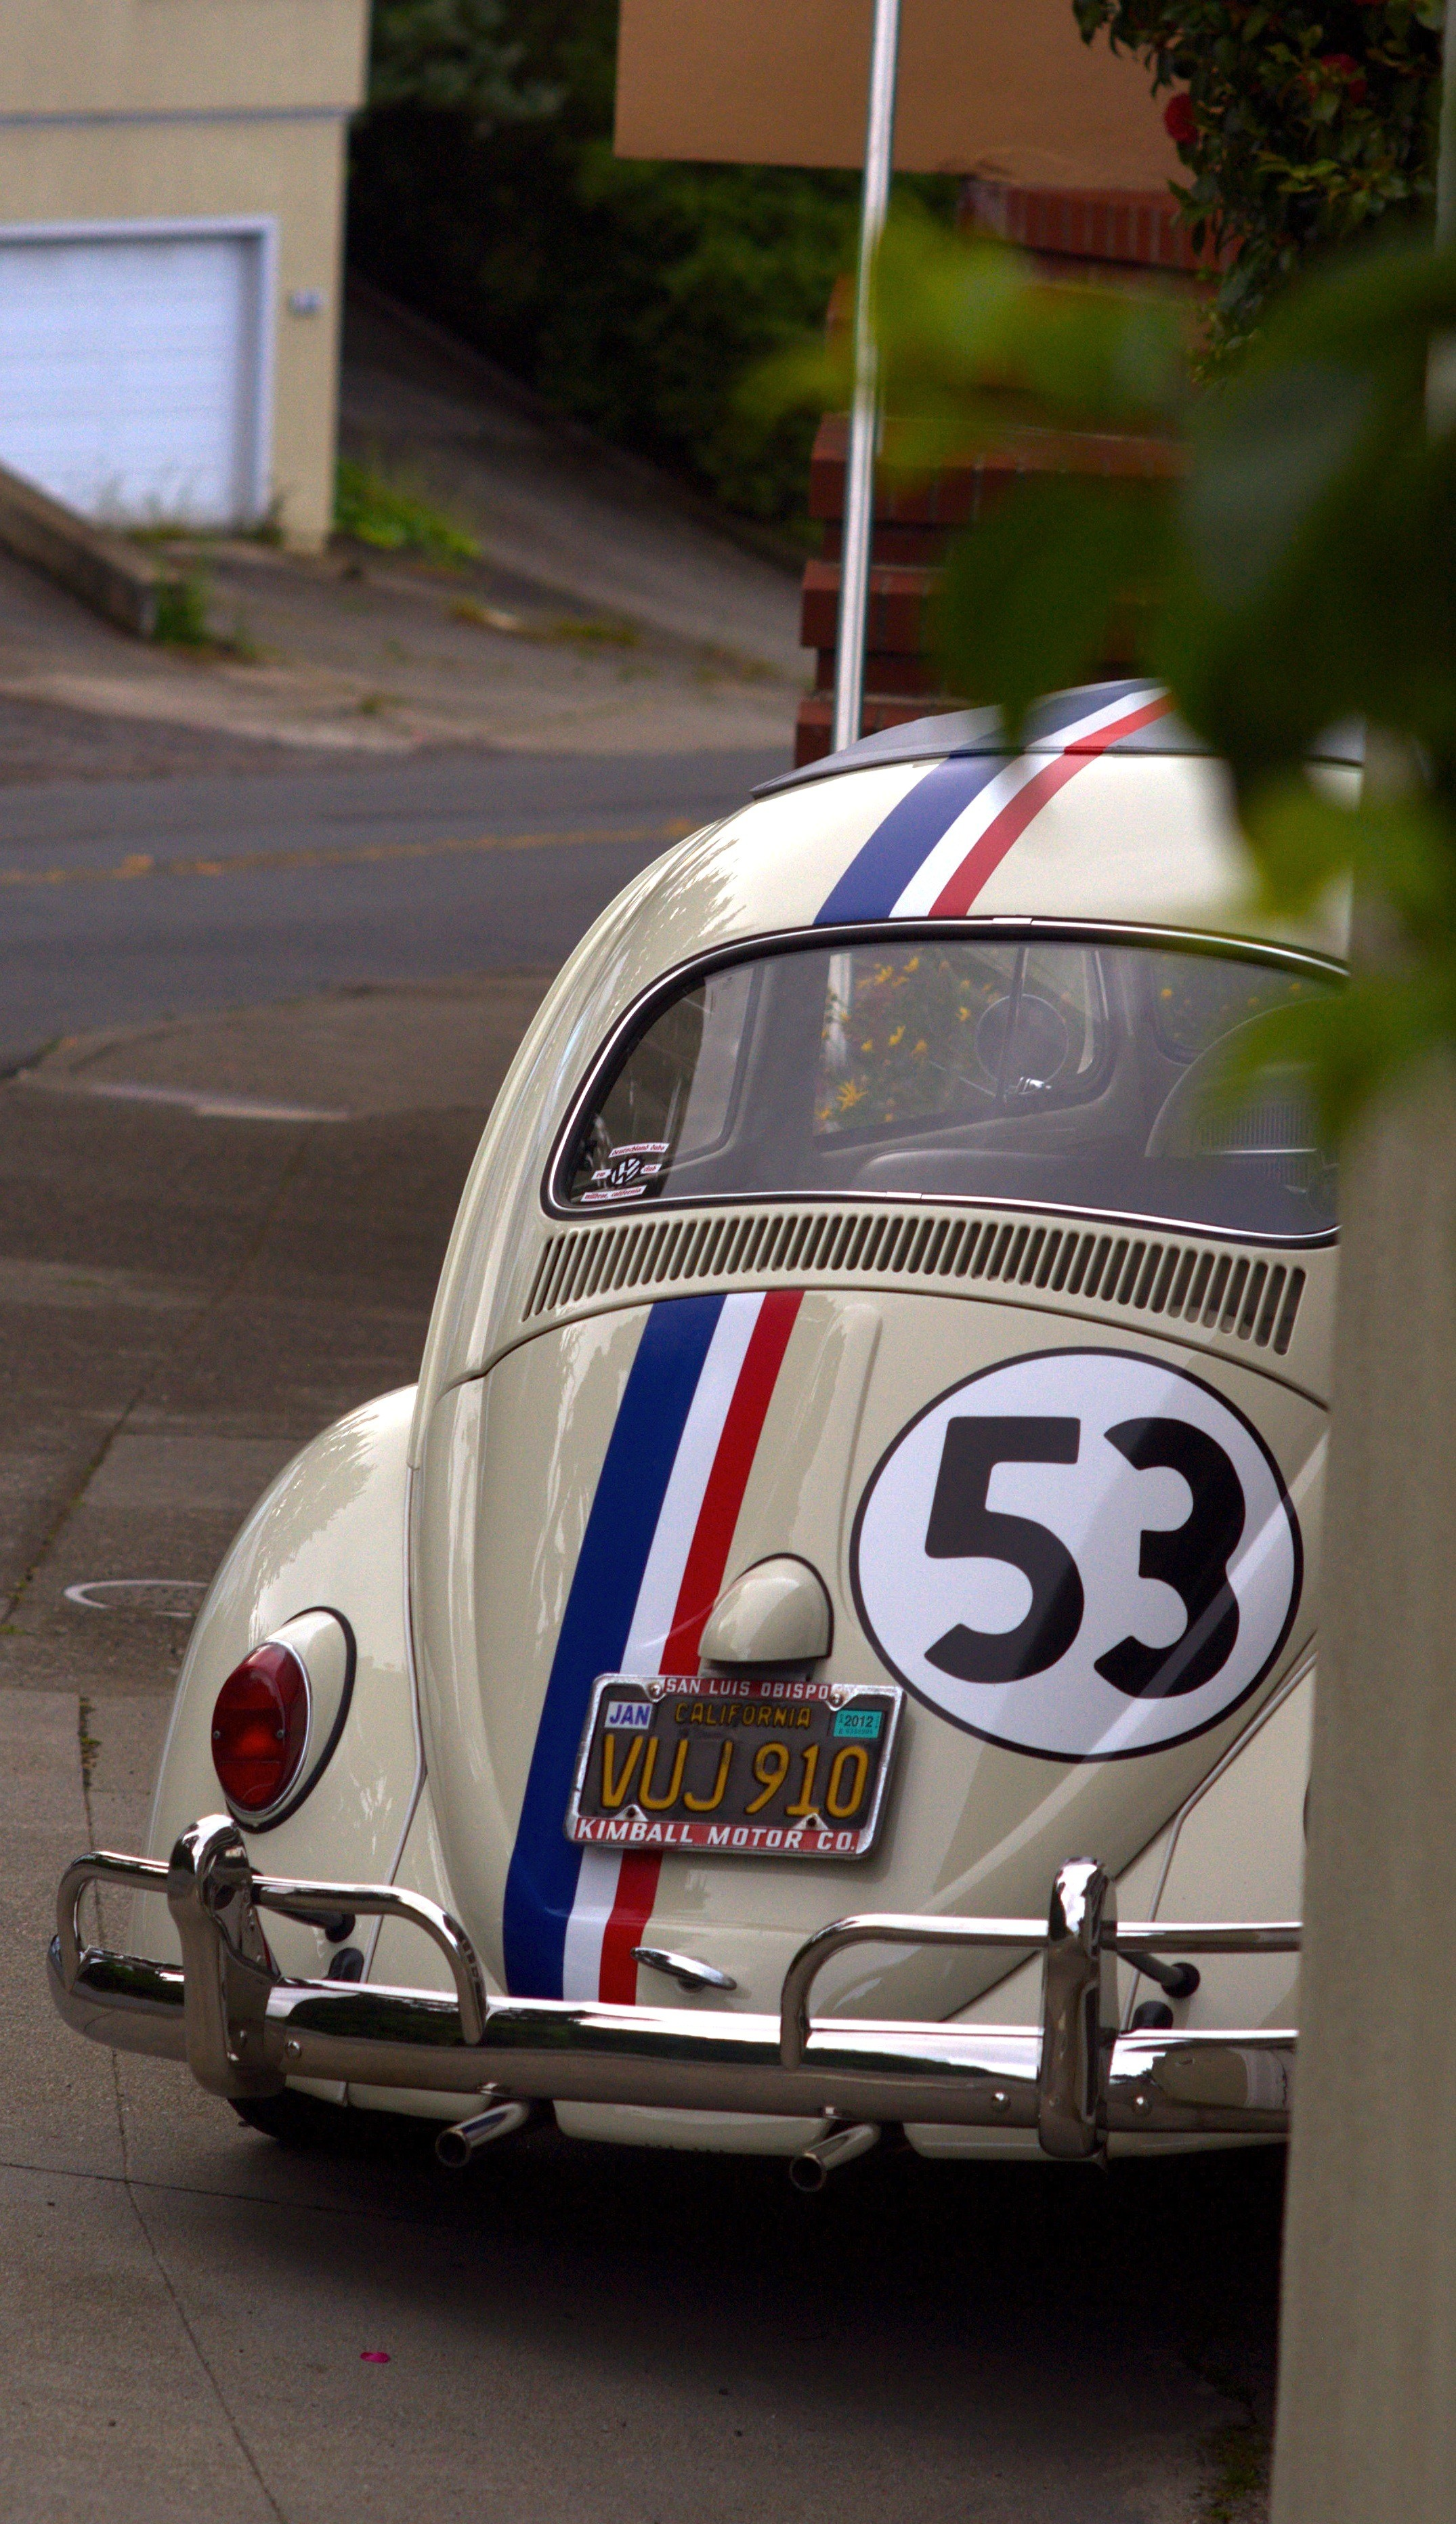 Res: 2150x3727, Peeking-Herbie-wallpaper-wp52010176